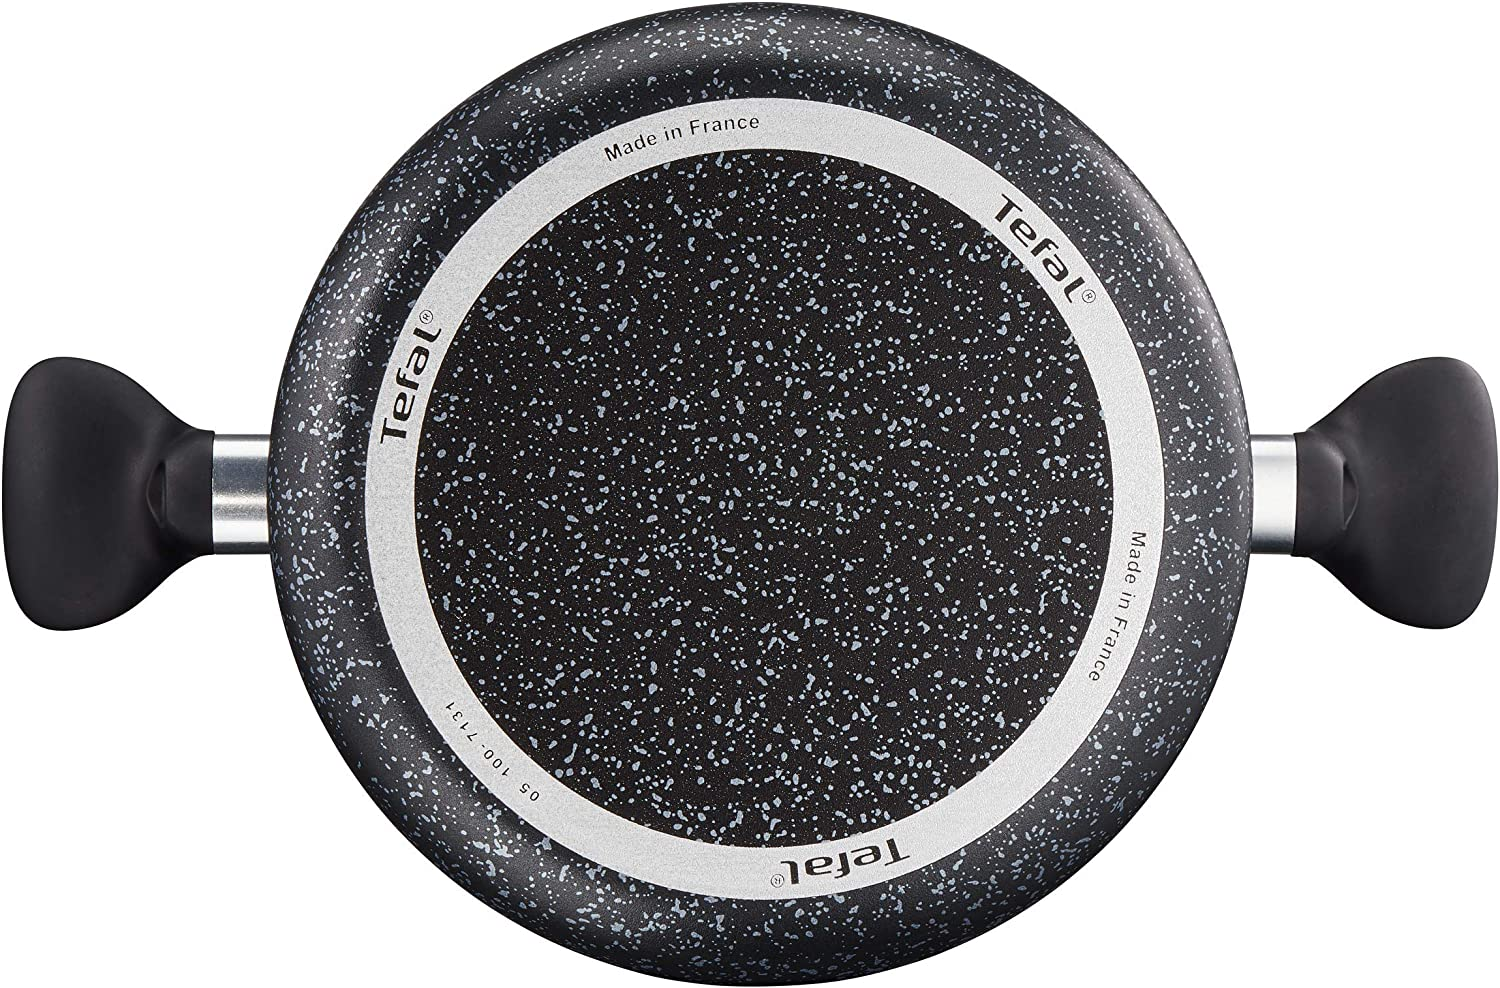 Aluminium Tefal Origins Speckled Frying Pan for All Heat Sources Including Induction Black 16 cm